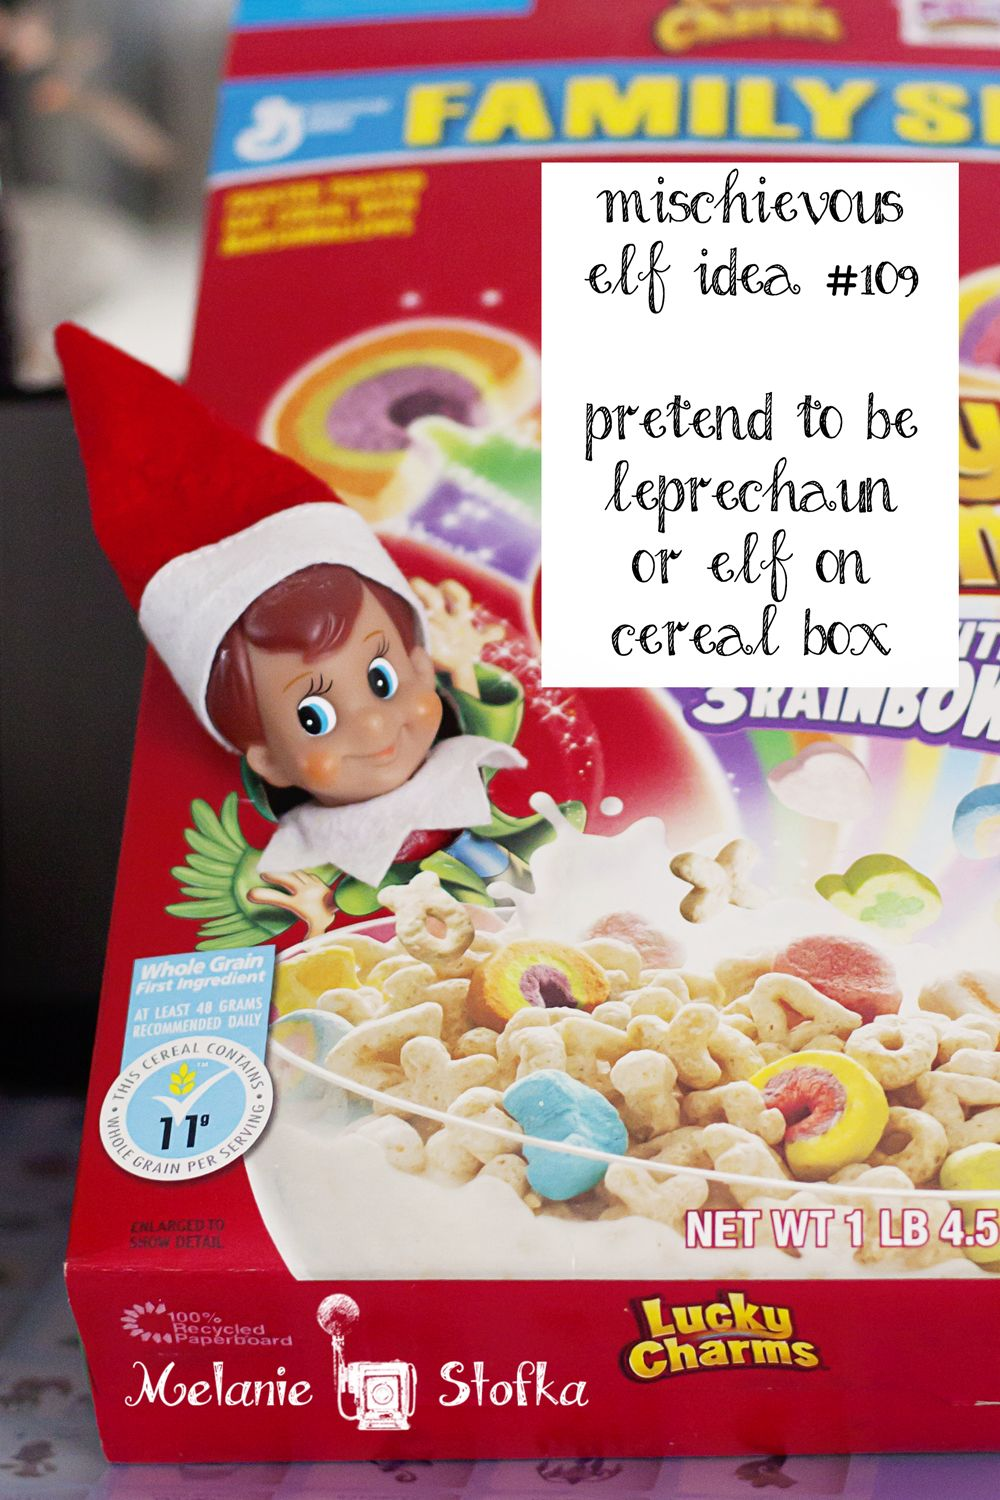 cef10ceed38397ef7c742cffee4e6b78 - How To Get Elf On The Shelf Out Of Box